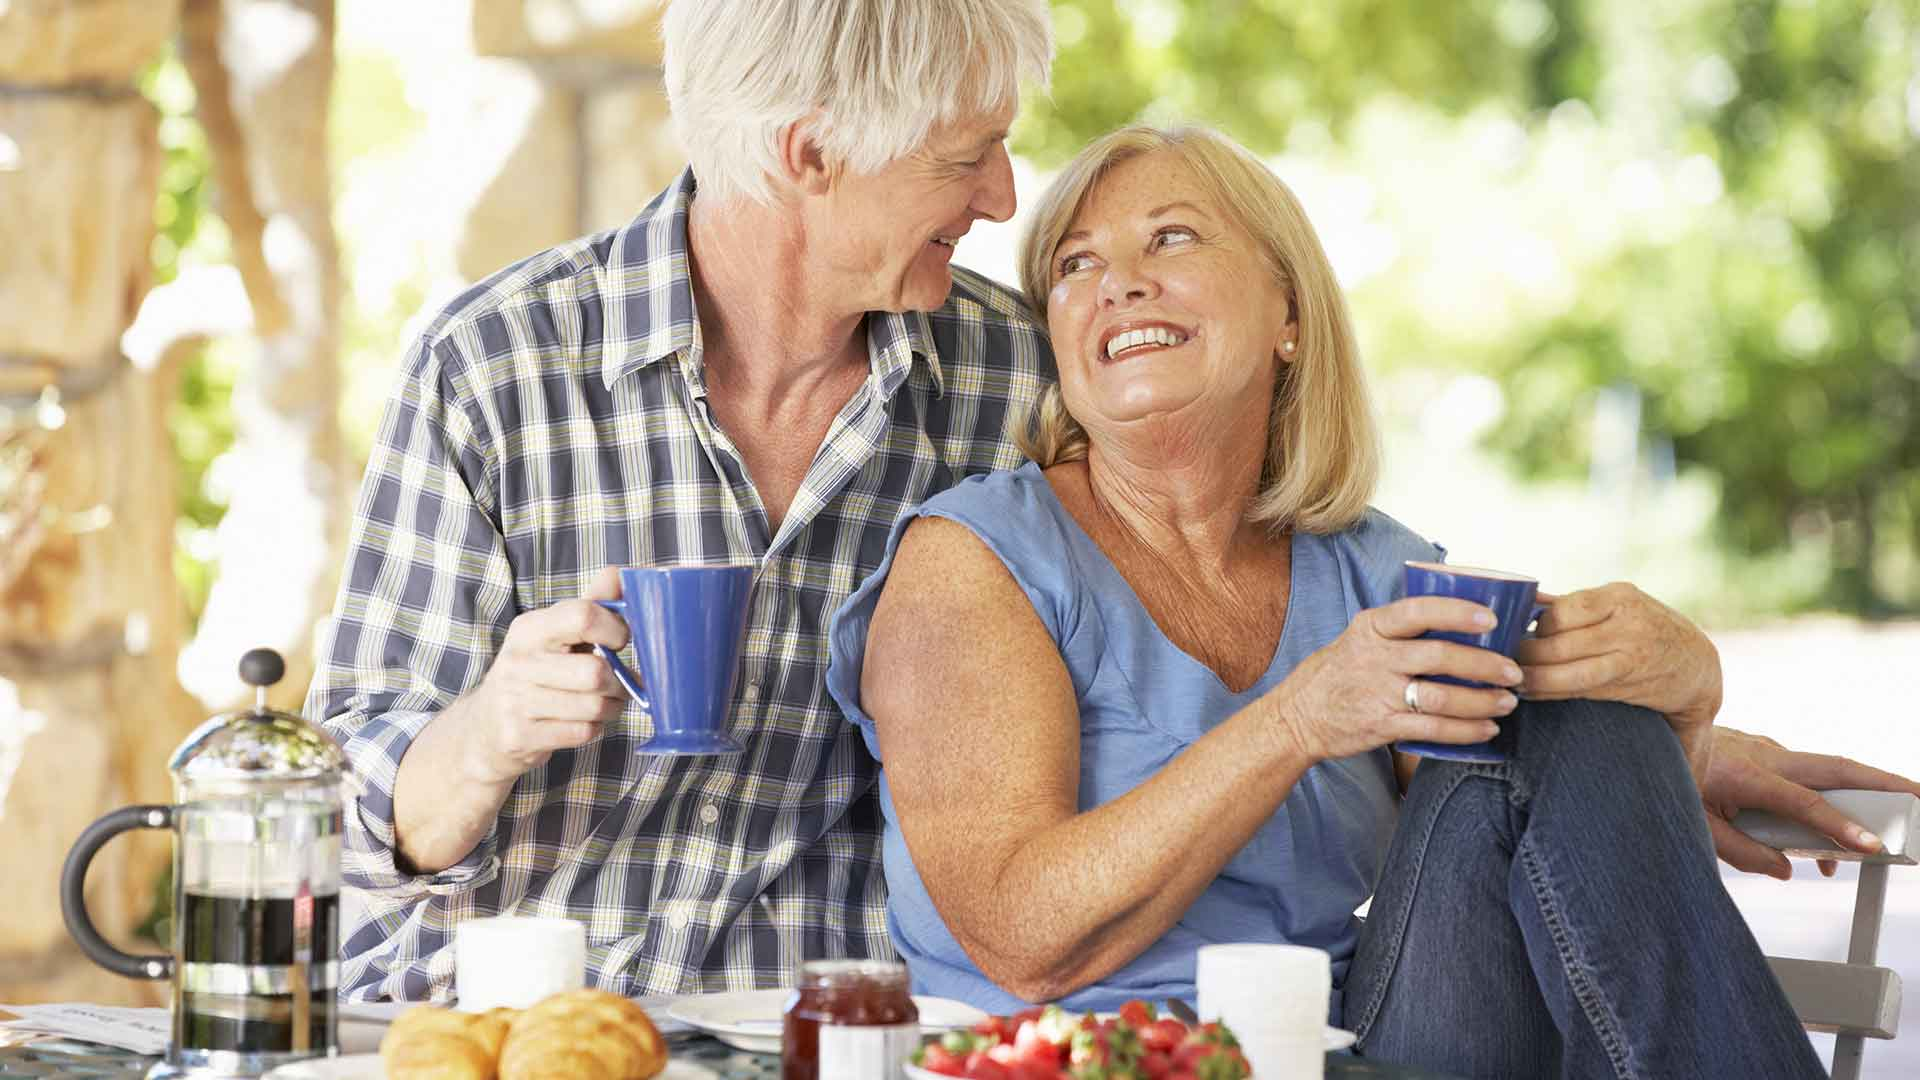 Murray-Mallee-Financial-Planning-Advice-4-Superannuation-Pension-Retirement-Income